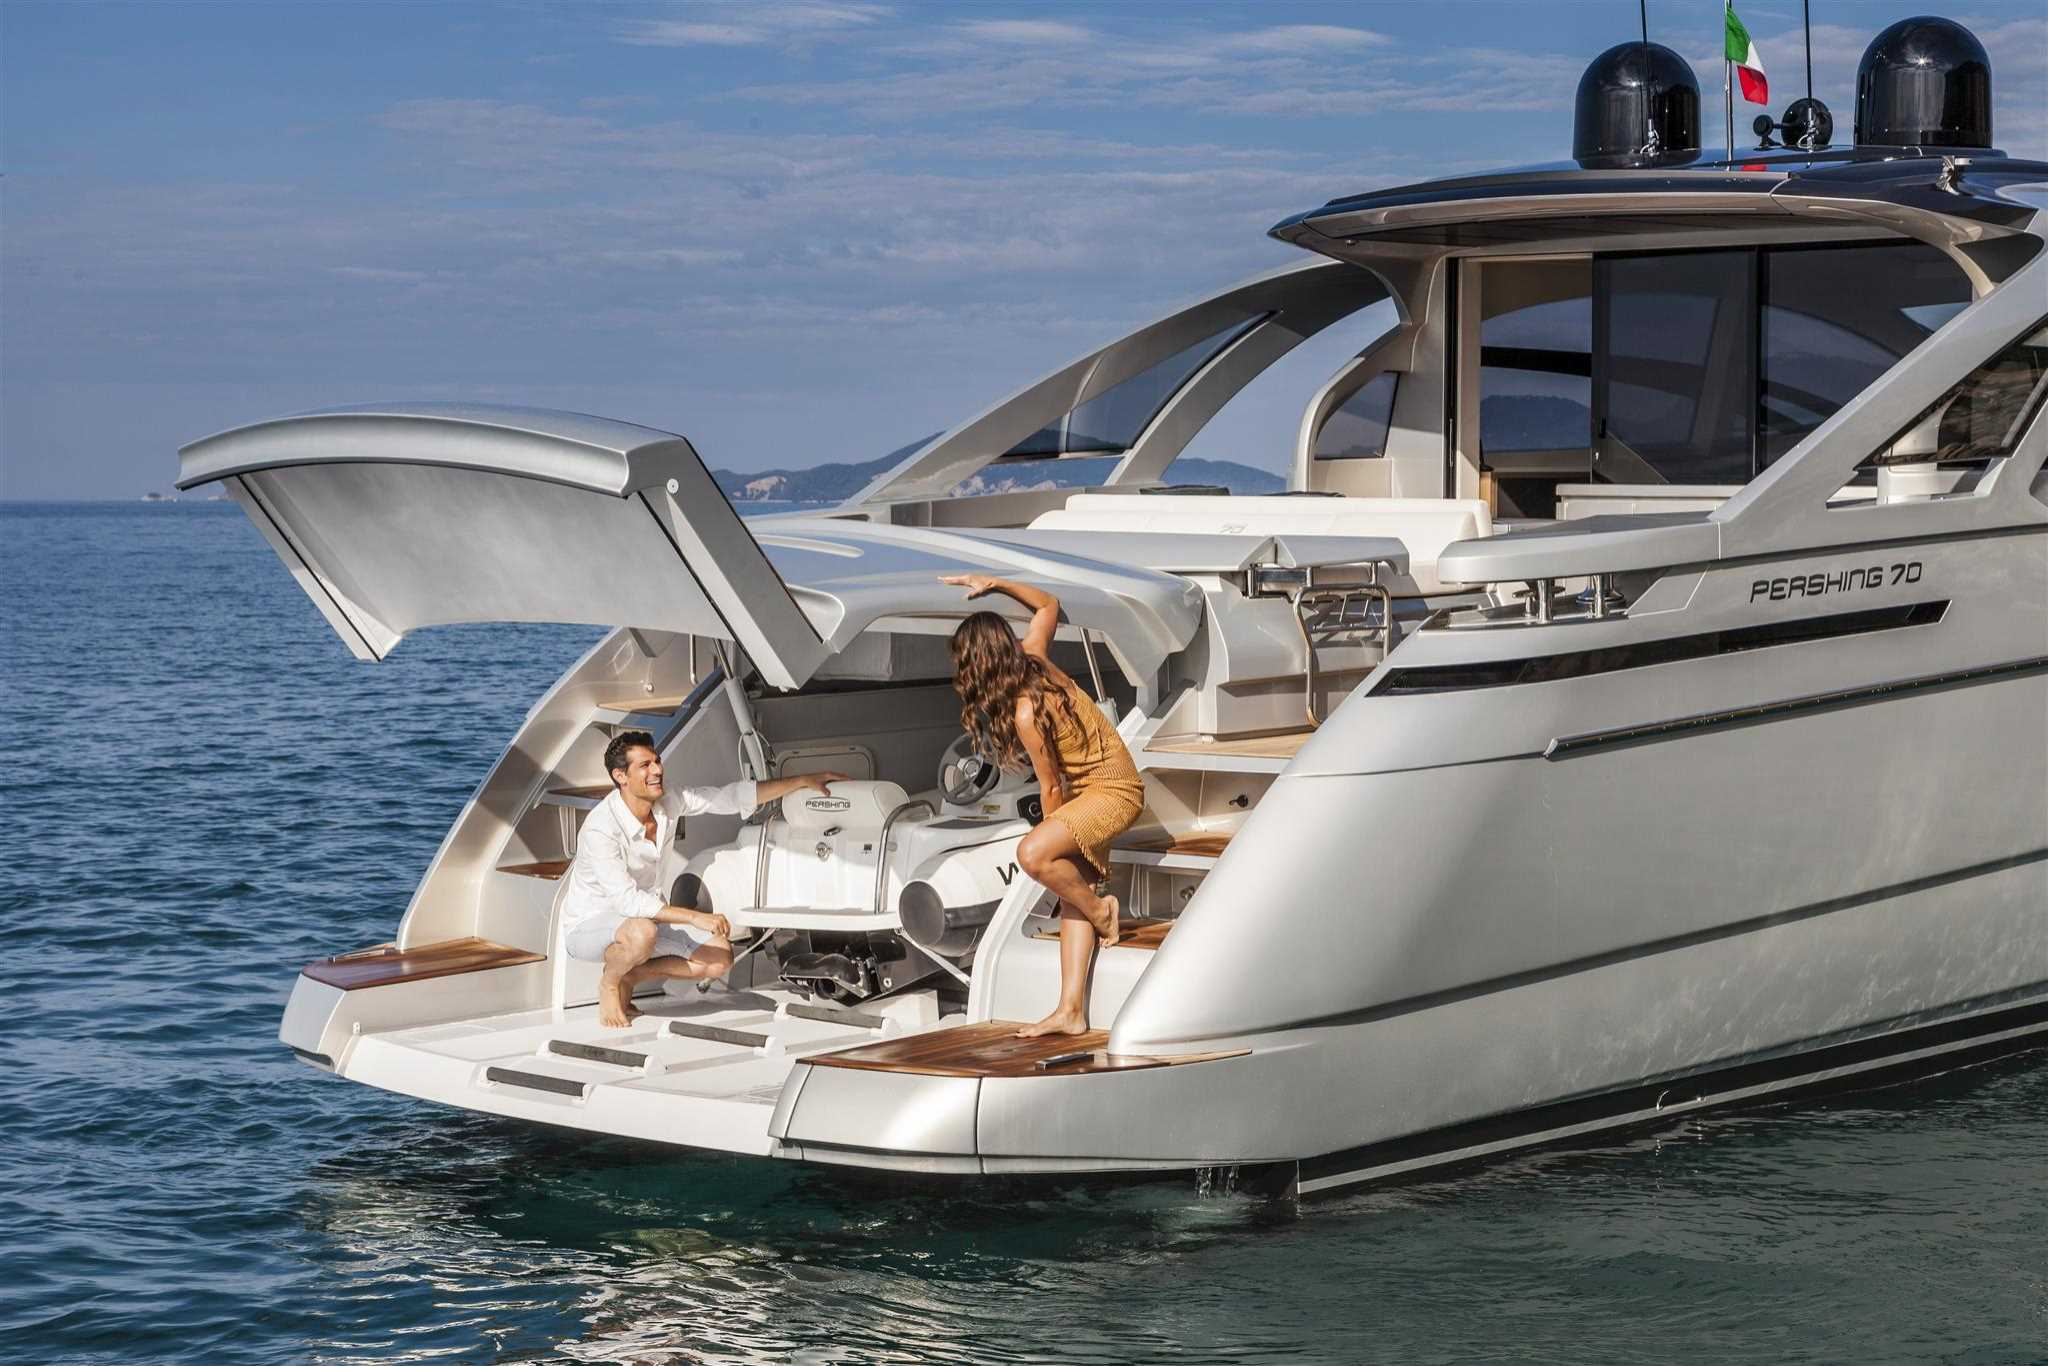 2018 Ferretti Yachts Pershing 70 for sale